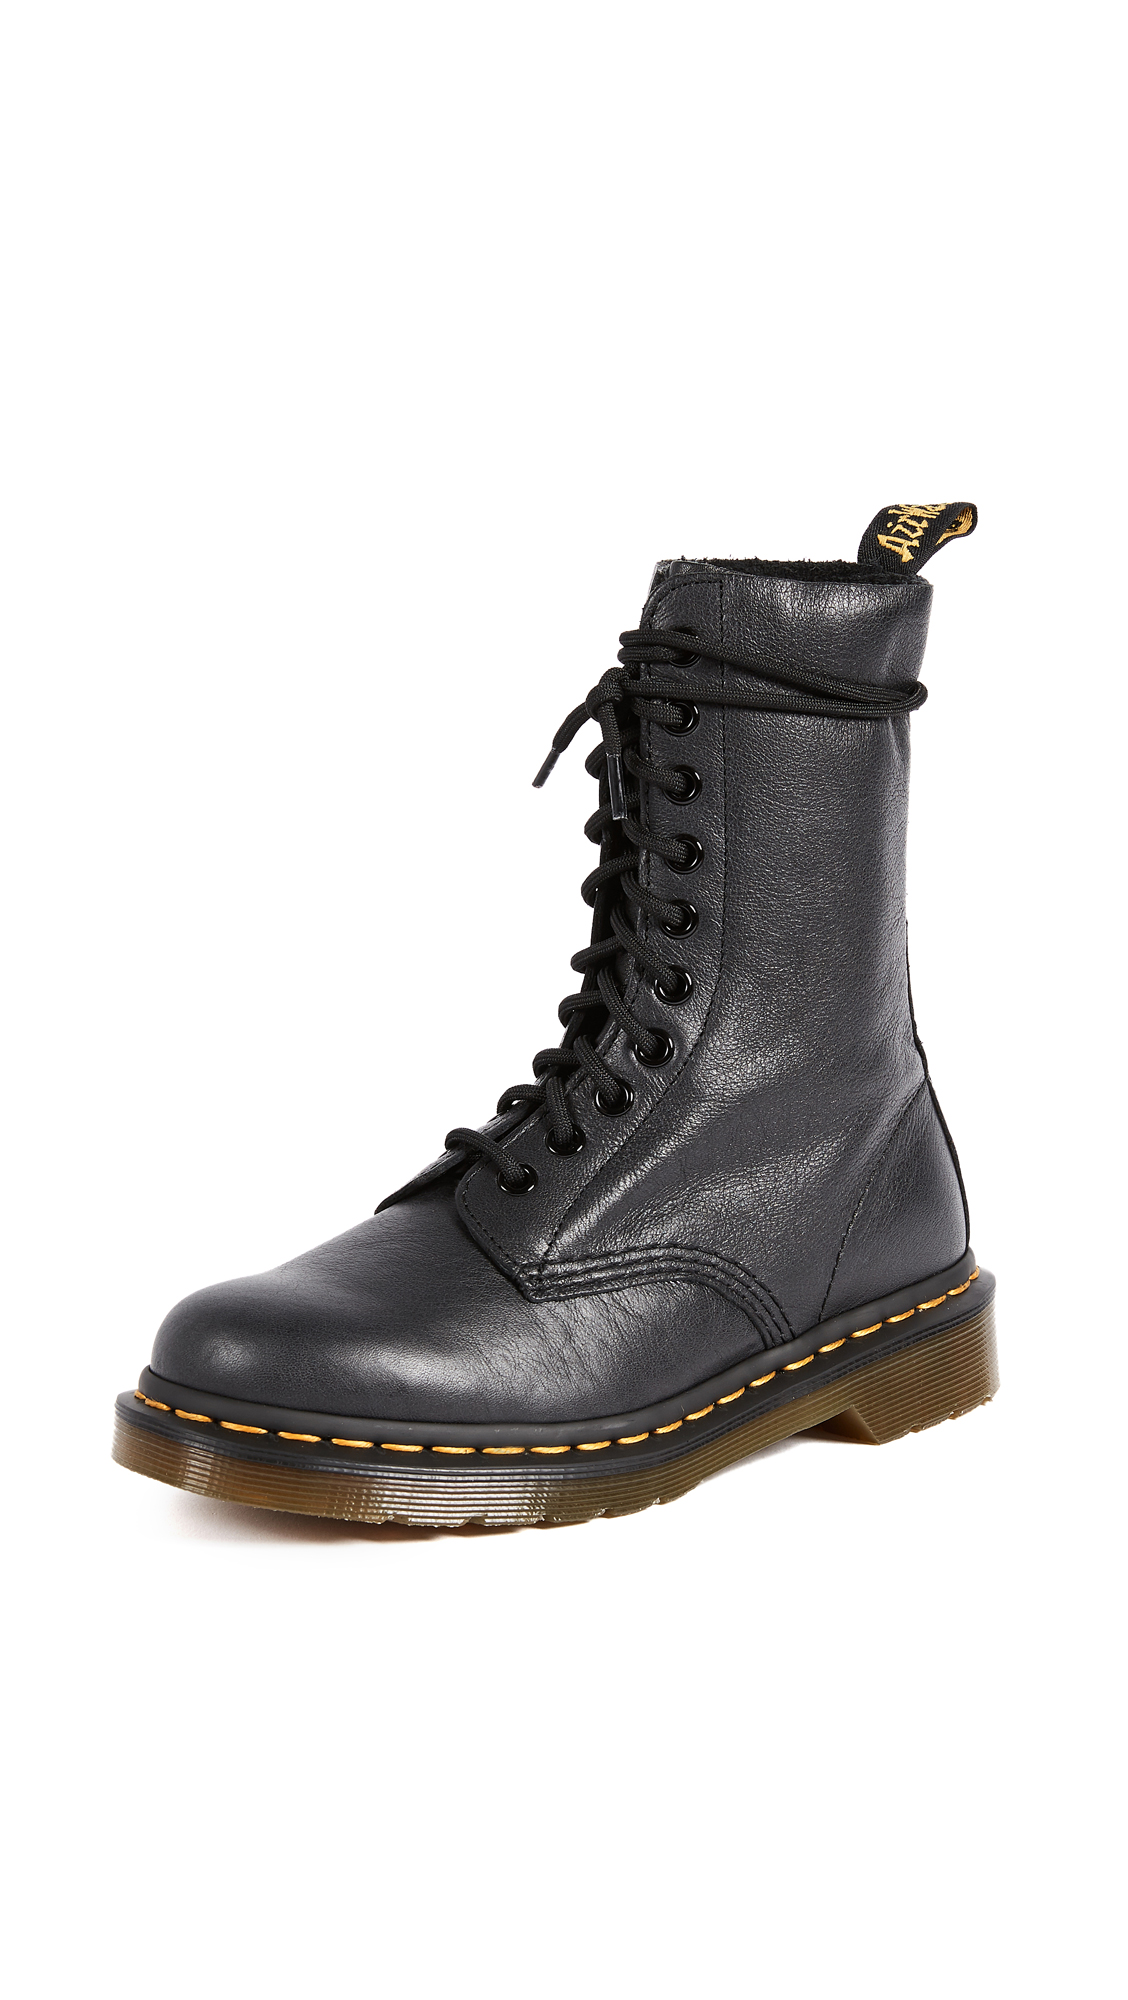 Dr. Martens 1490 10 Eye Boot